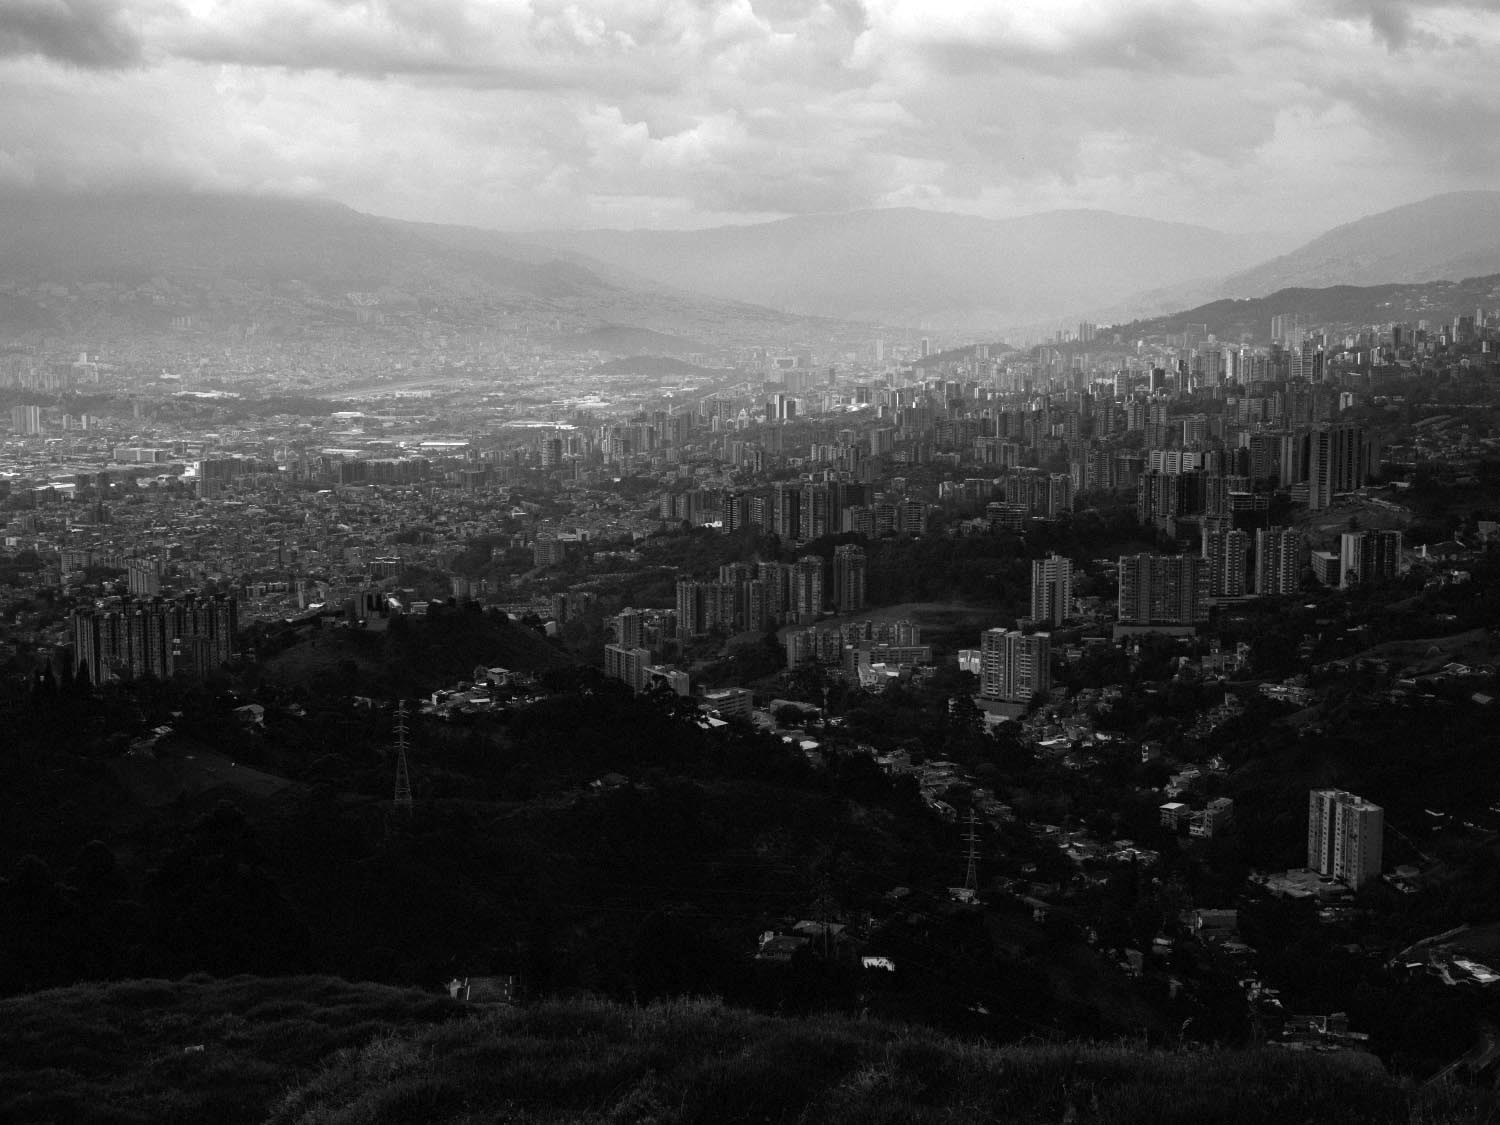 Medellín from the Arenales viewpoint.